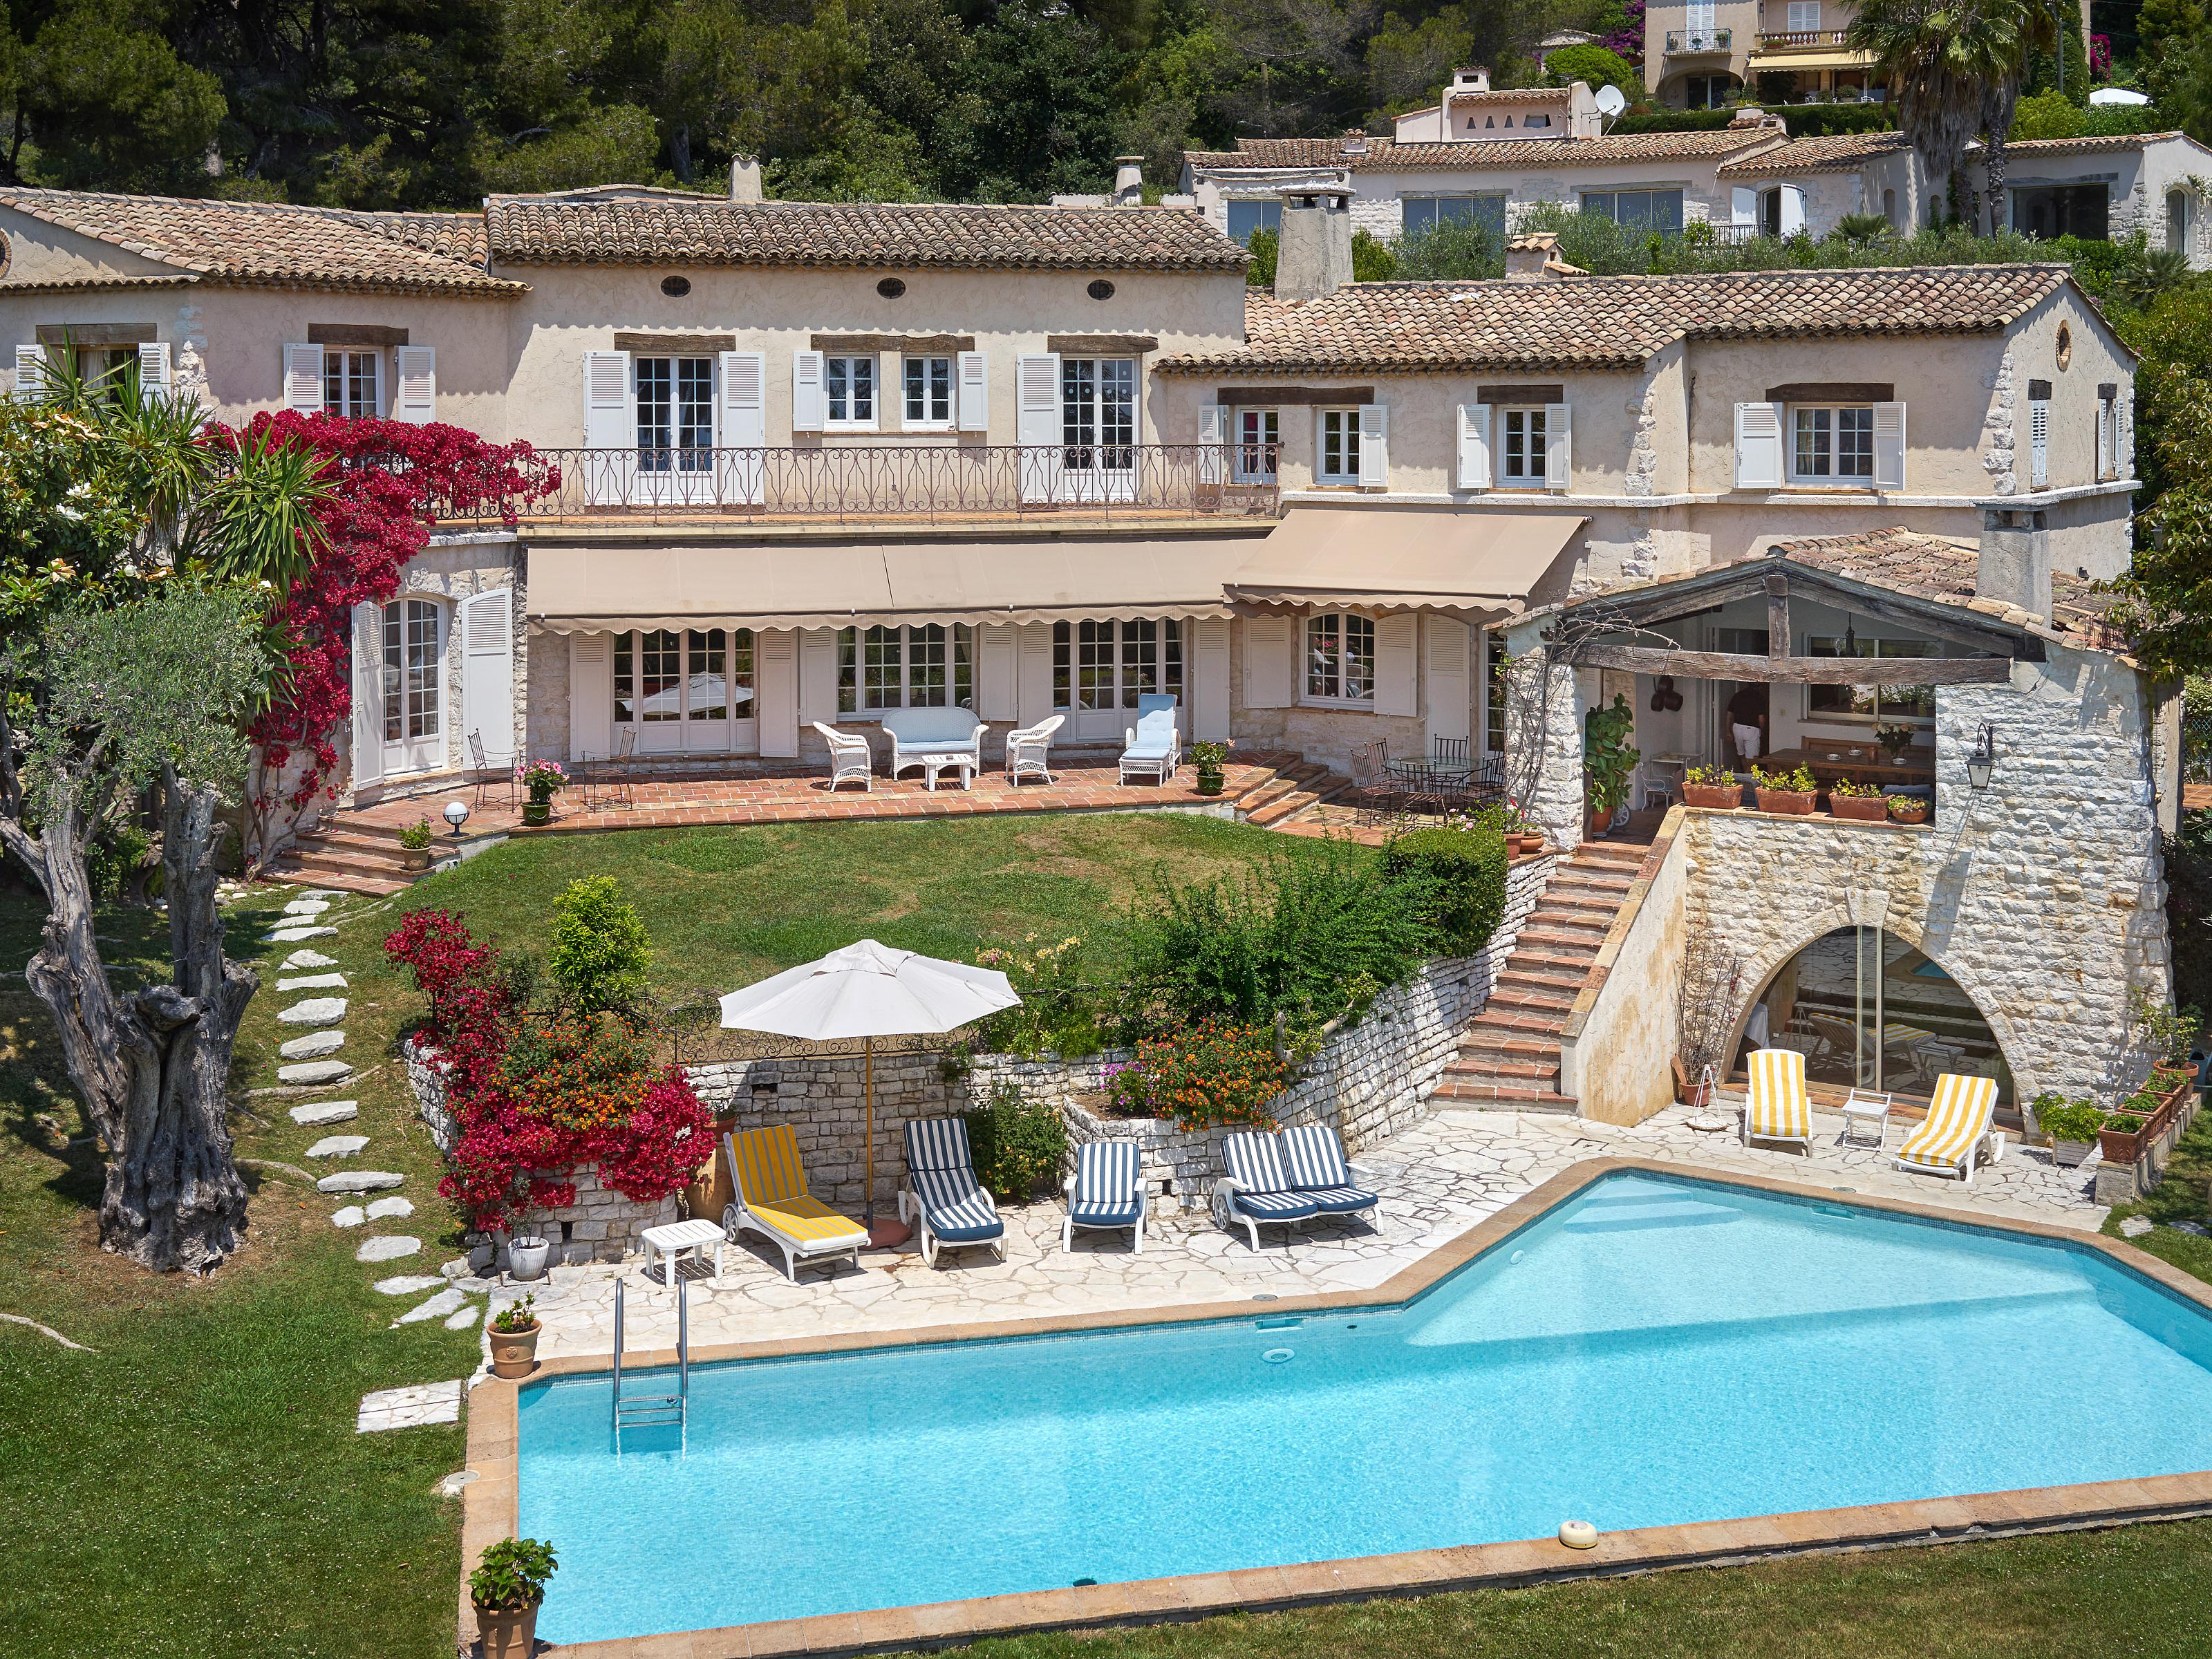 Single Family Home for Sale at Wonderful bastide overlooking the bay of Cannes with panoramic sea views Cannes, Provence-Alpes-Cote D'Azur 06400 France